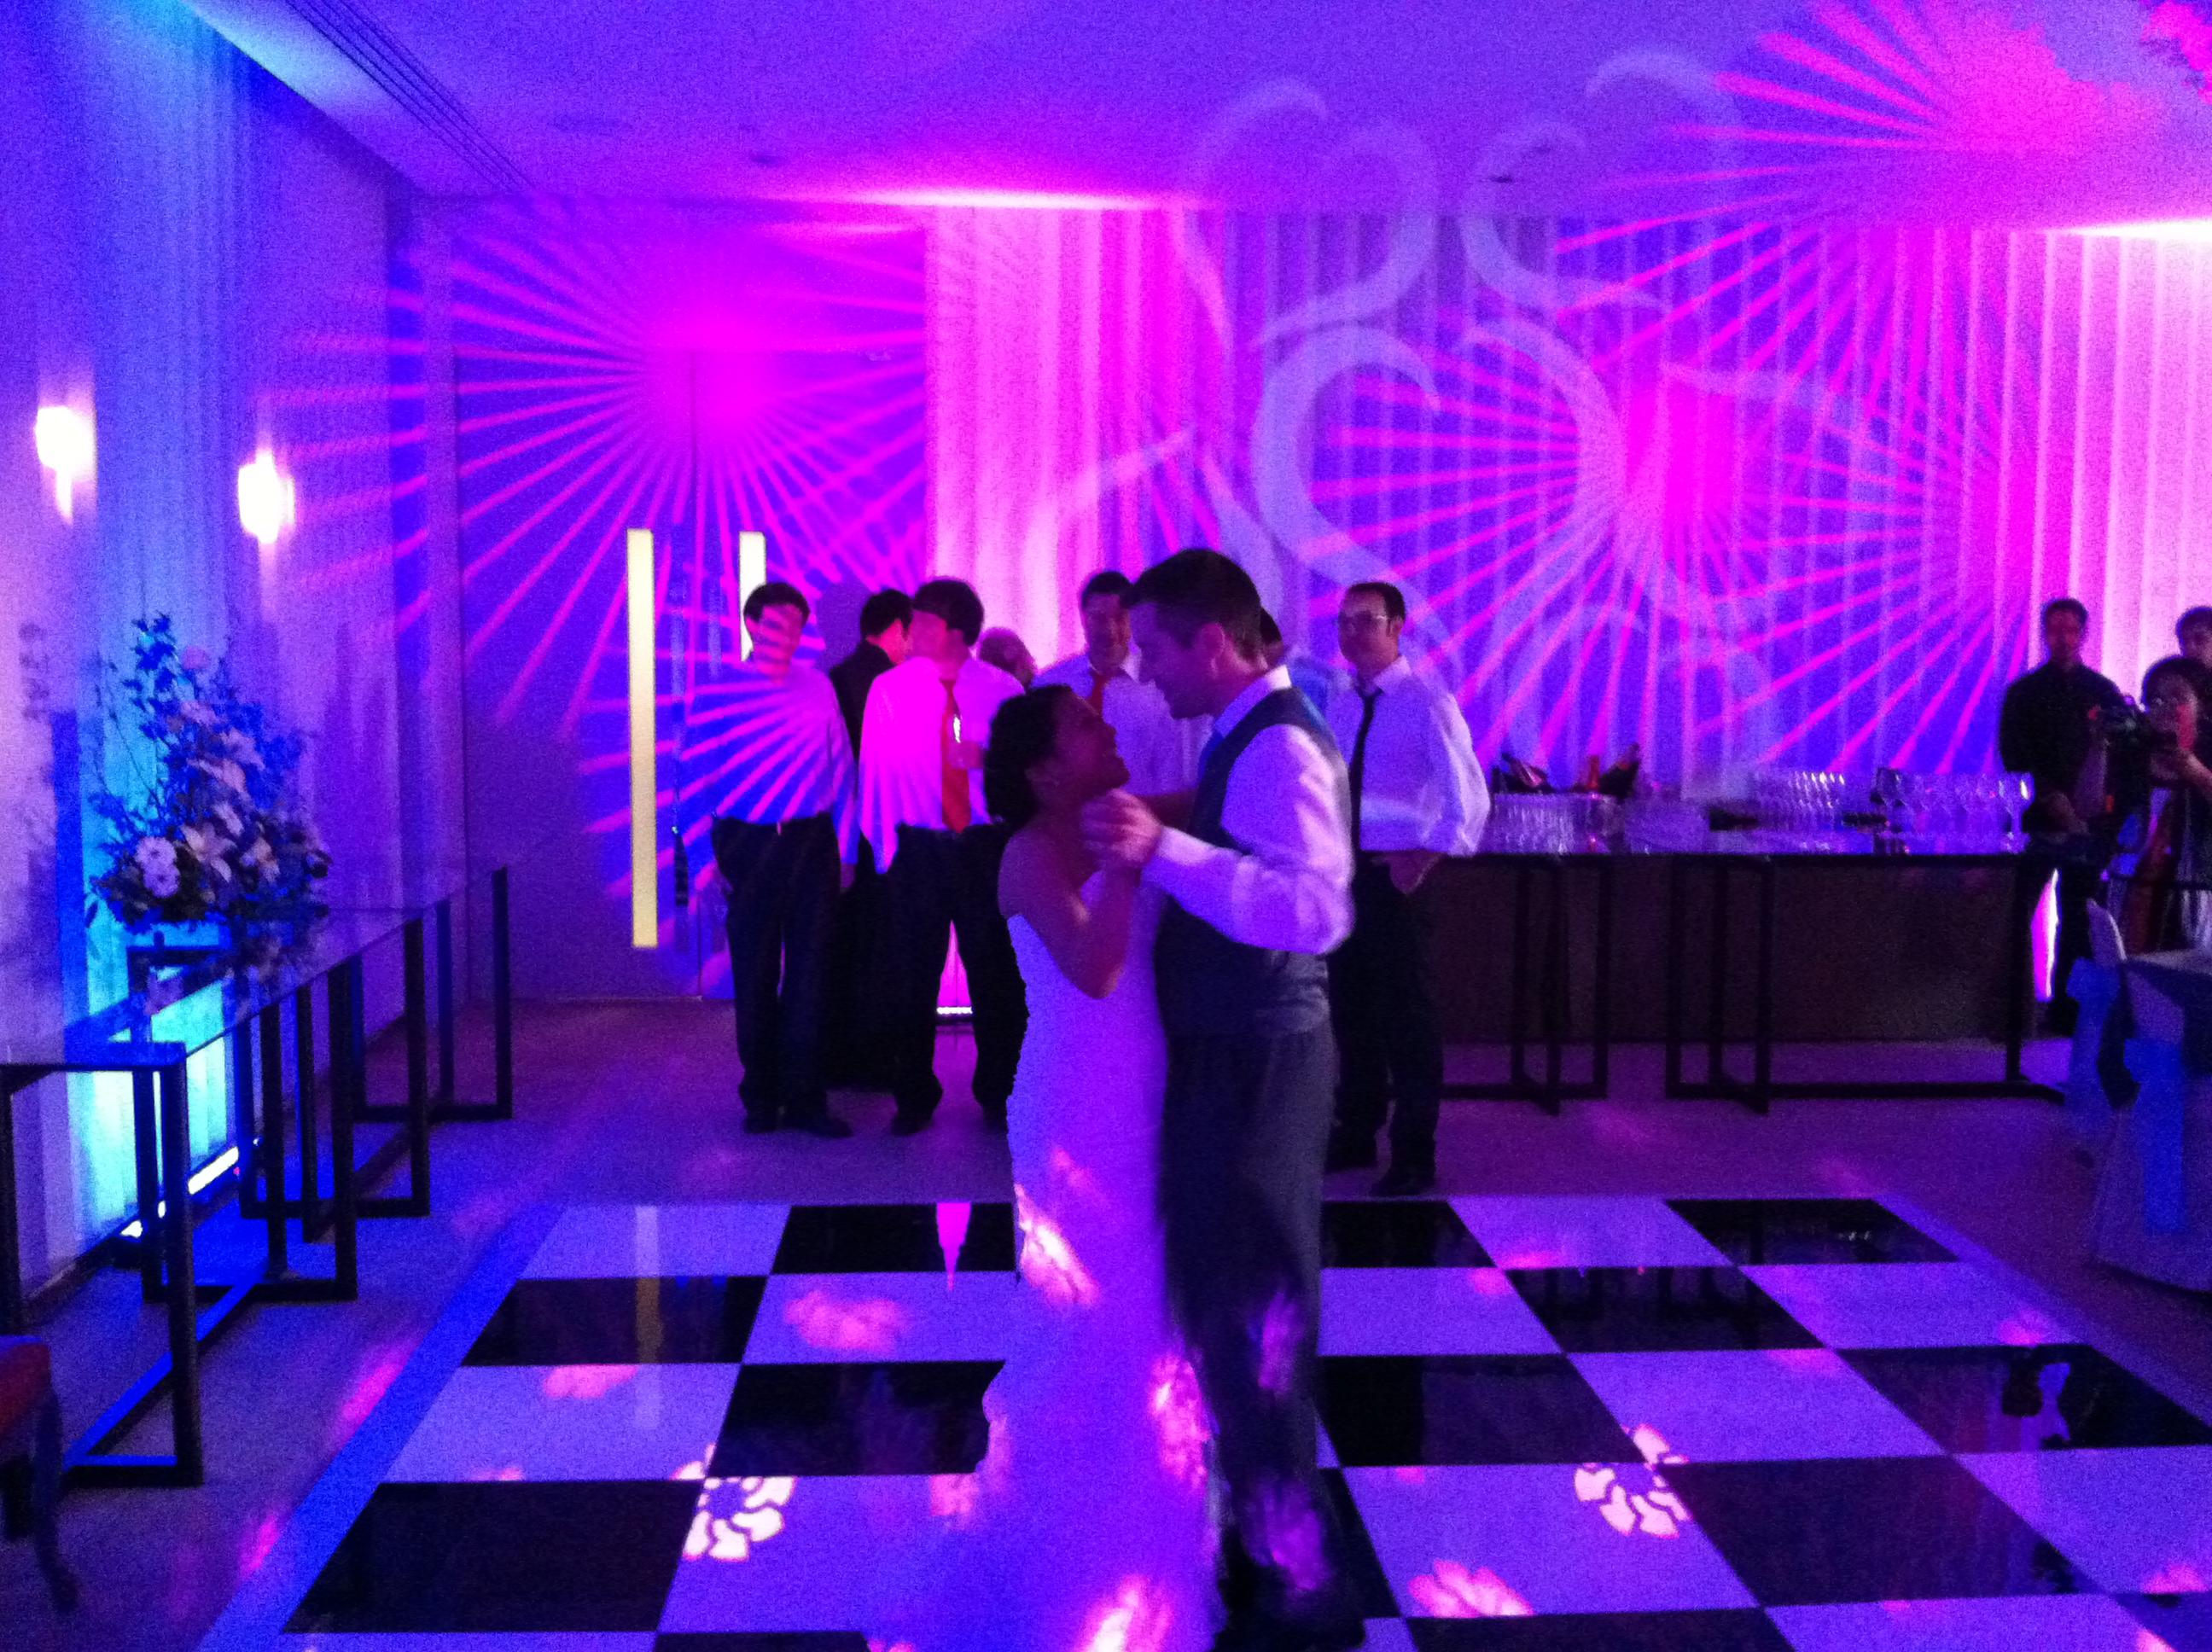 Uplighting at Coworth Park